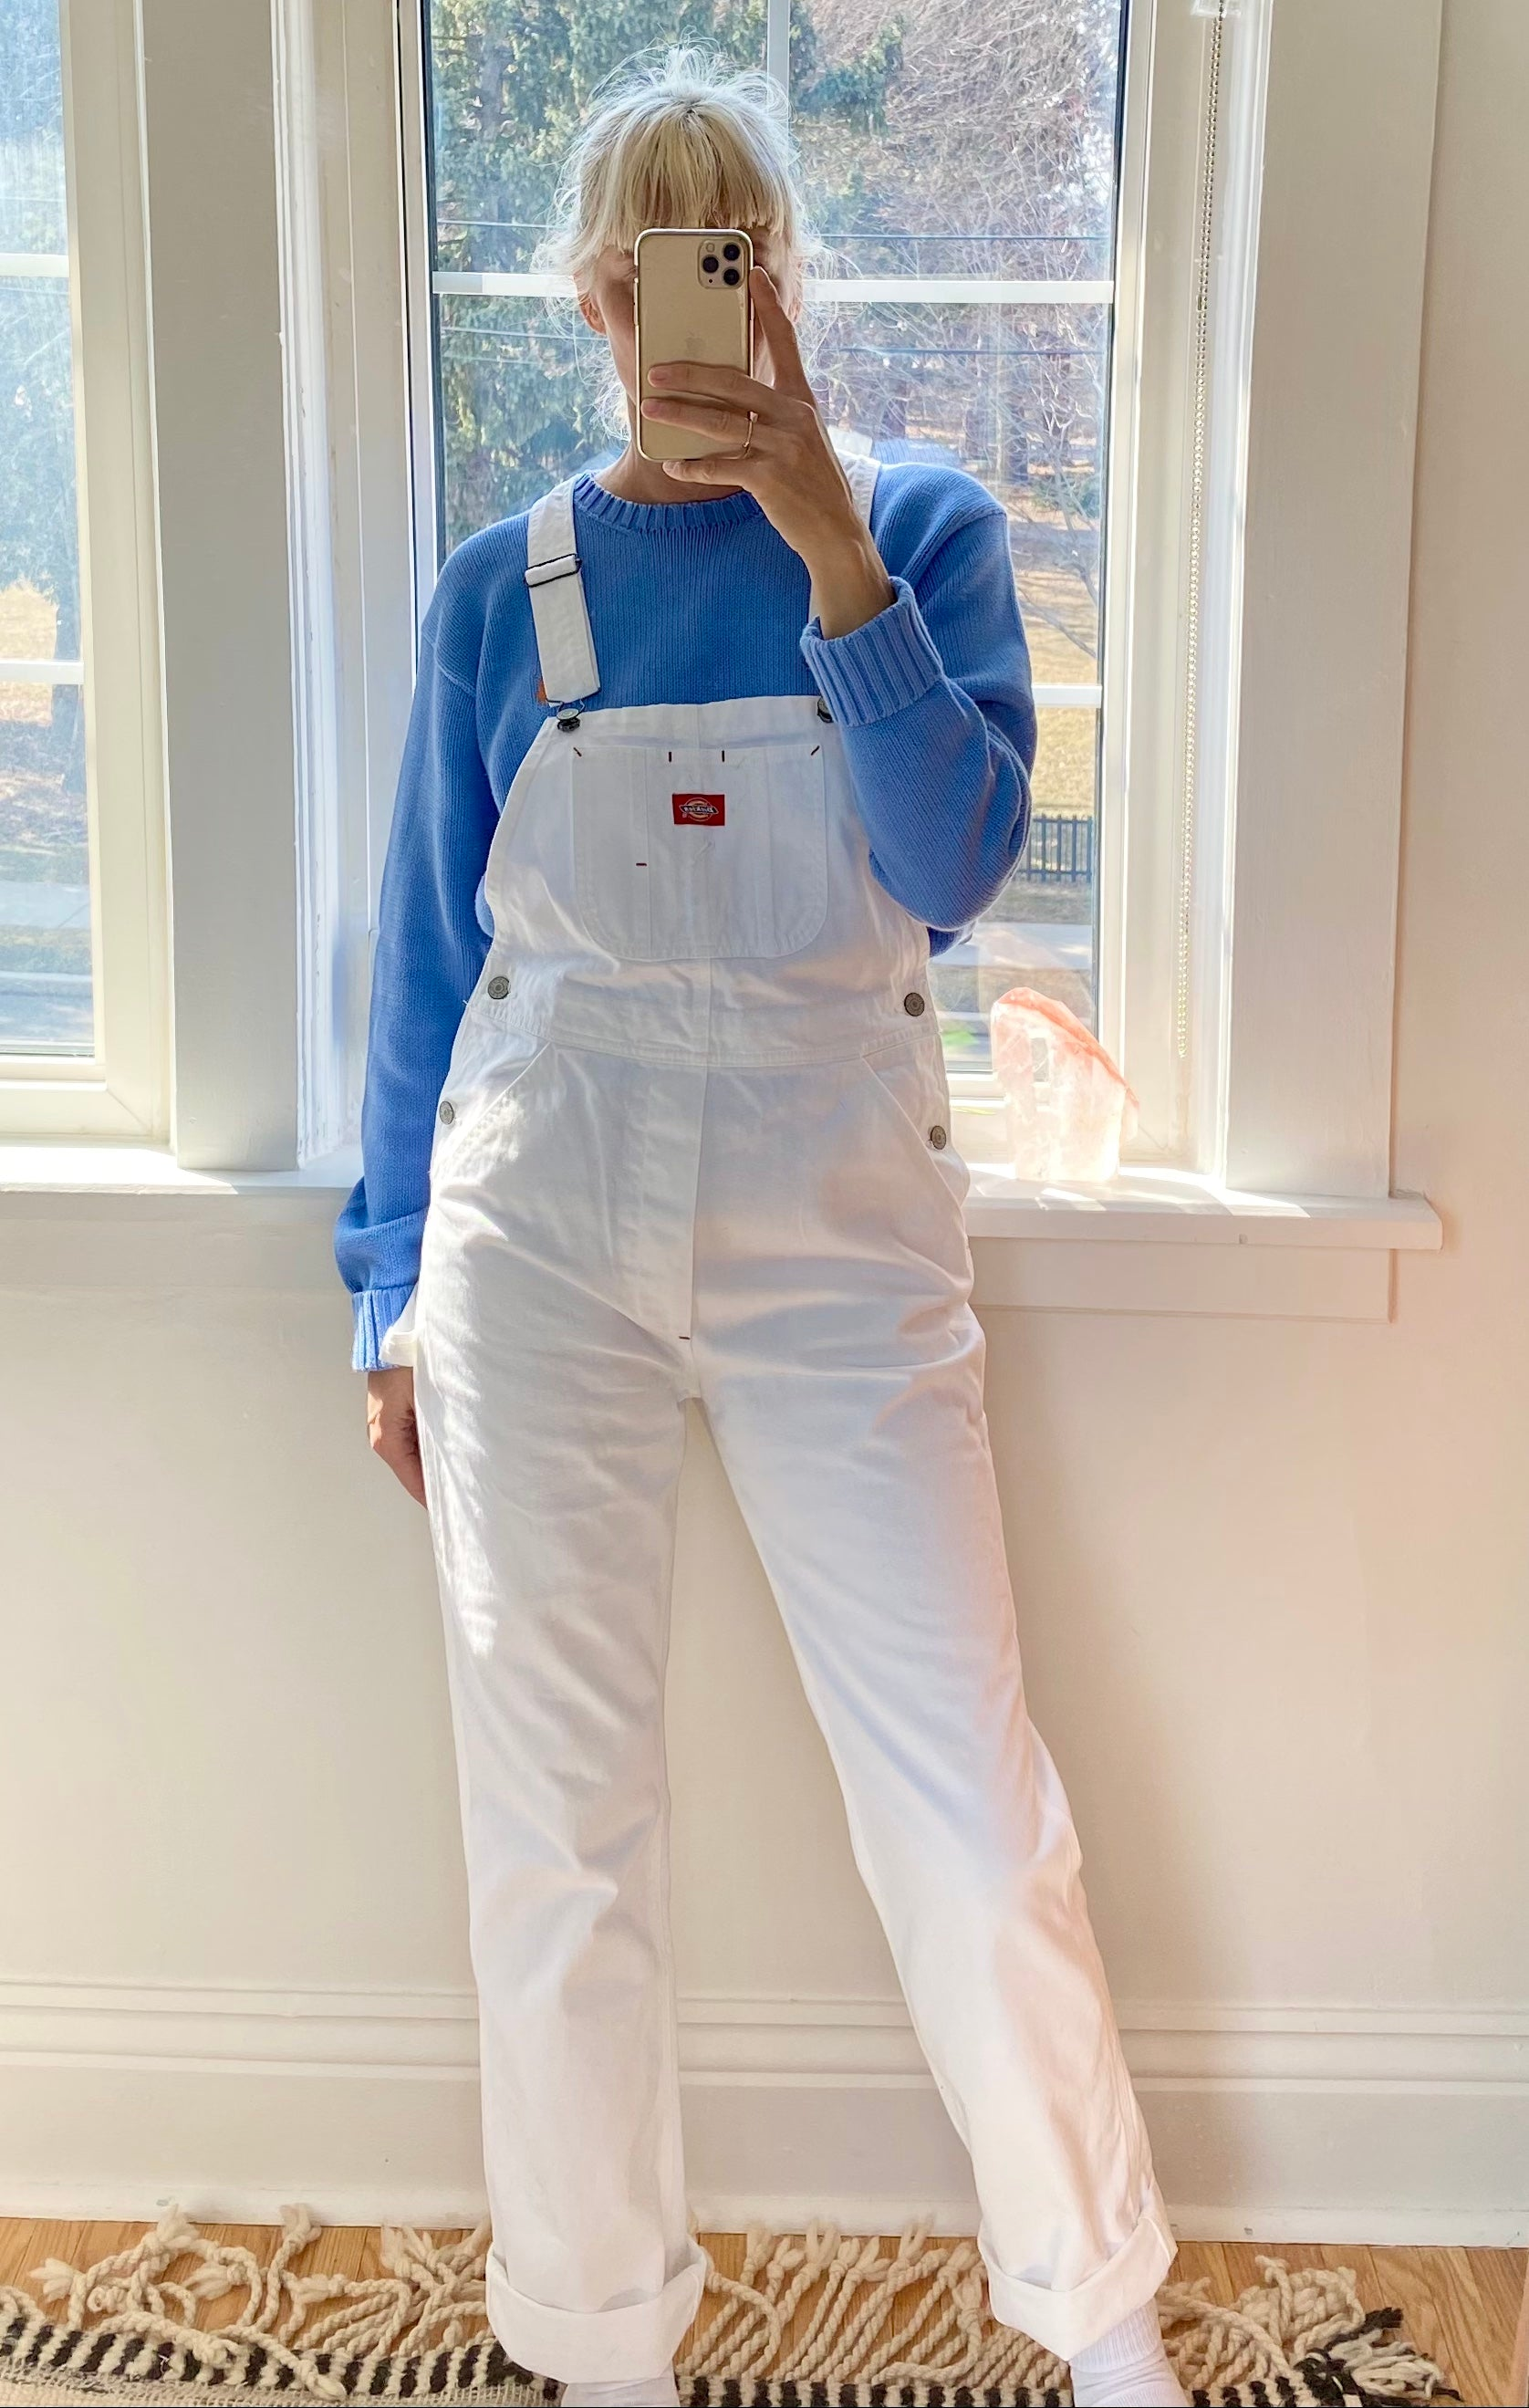 DICKIES White Carpenter Overalls Size SM